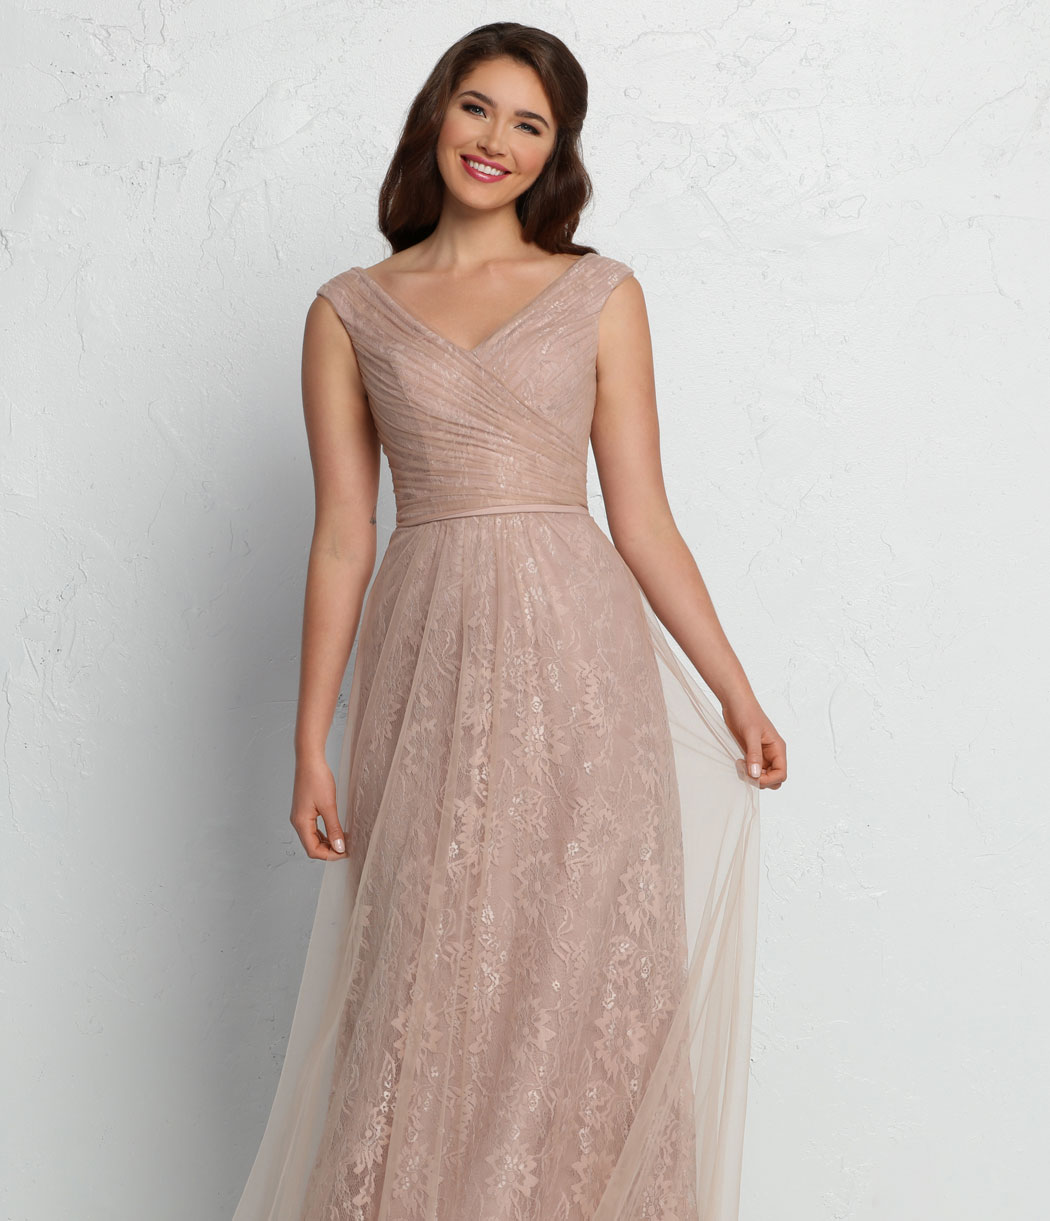 Extraordinary Informal Bridesmaid Wedding Bridesmaid Dresses Davinci Bridal Collection Where To Buy Bridesmaid Dresses Australia Where To Buy Bridesmaid Dresses Sydney wedding dress Where To Buy Bridesmaid Dresses